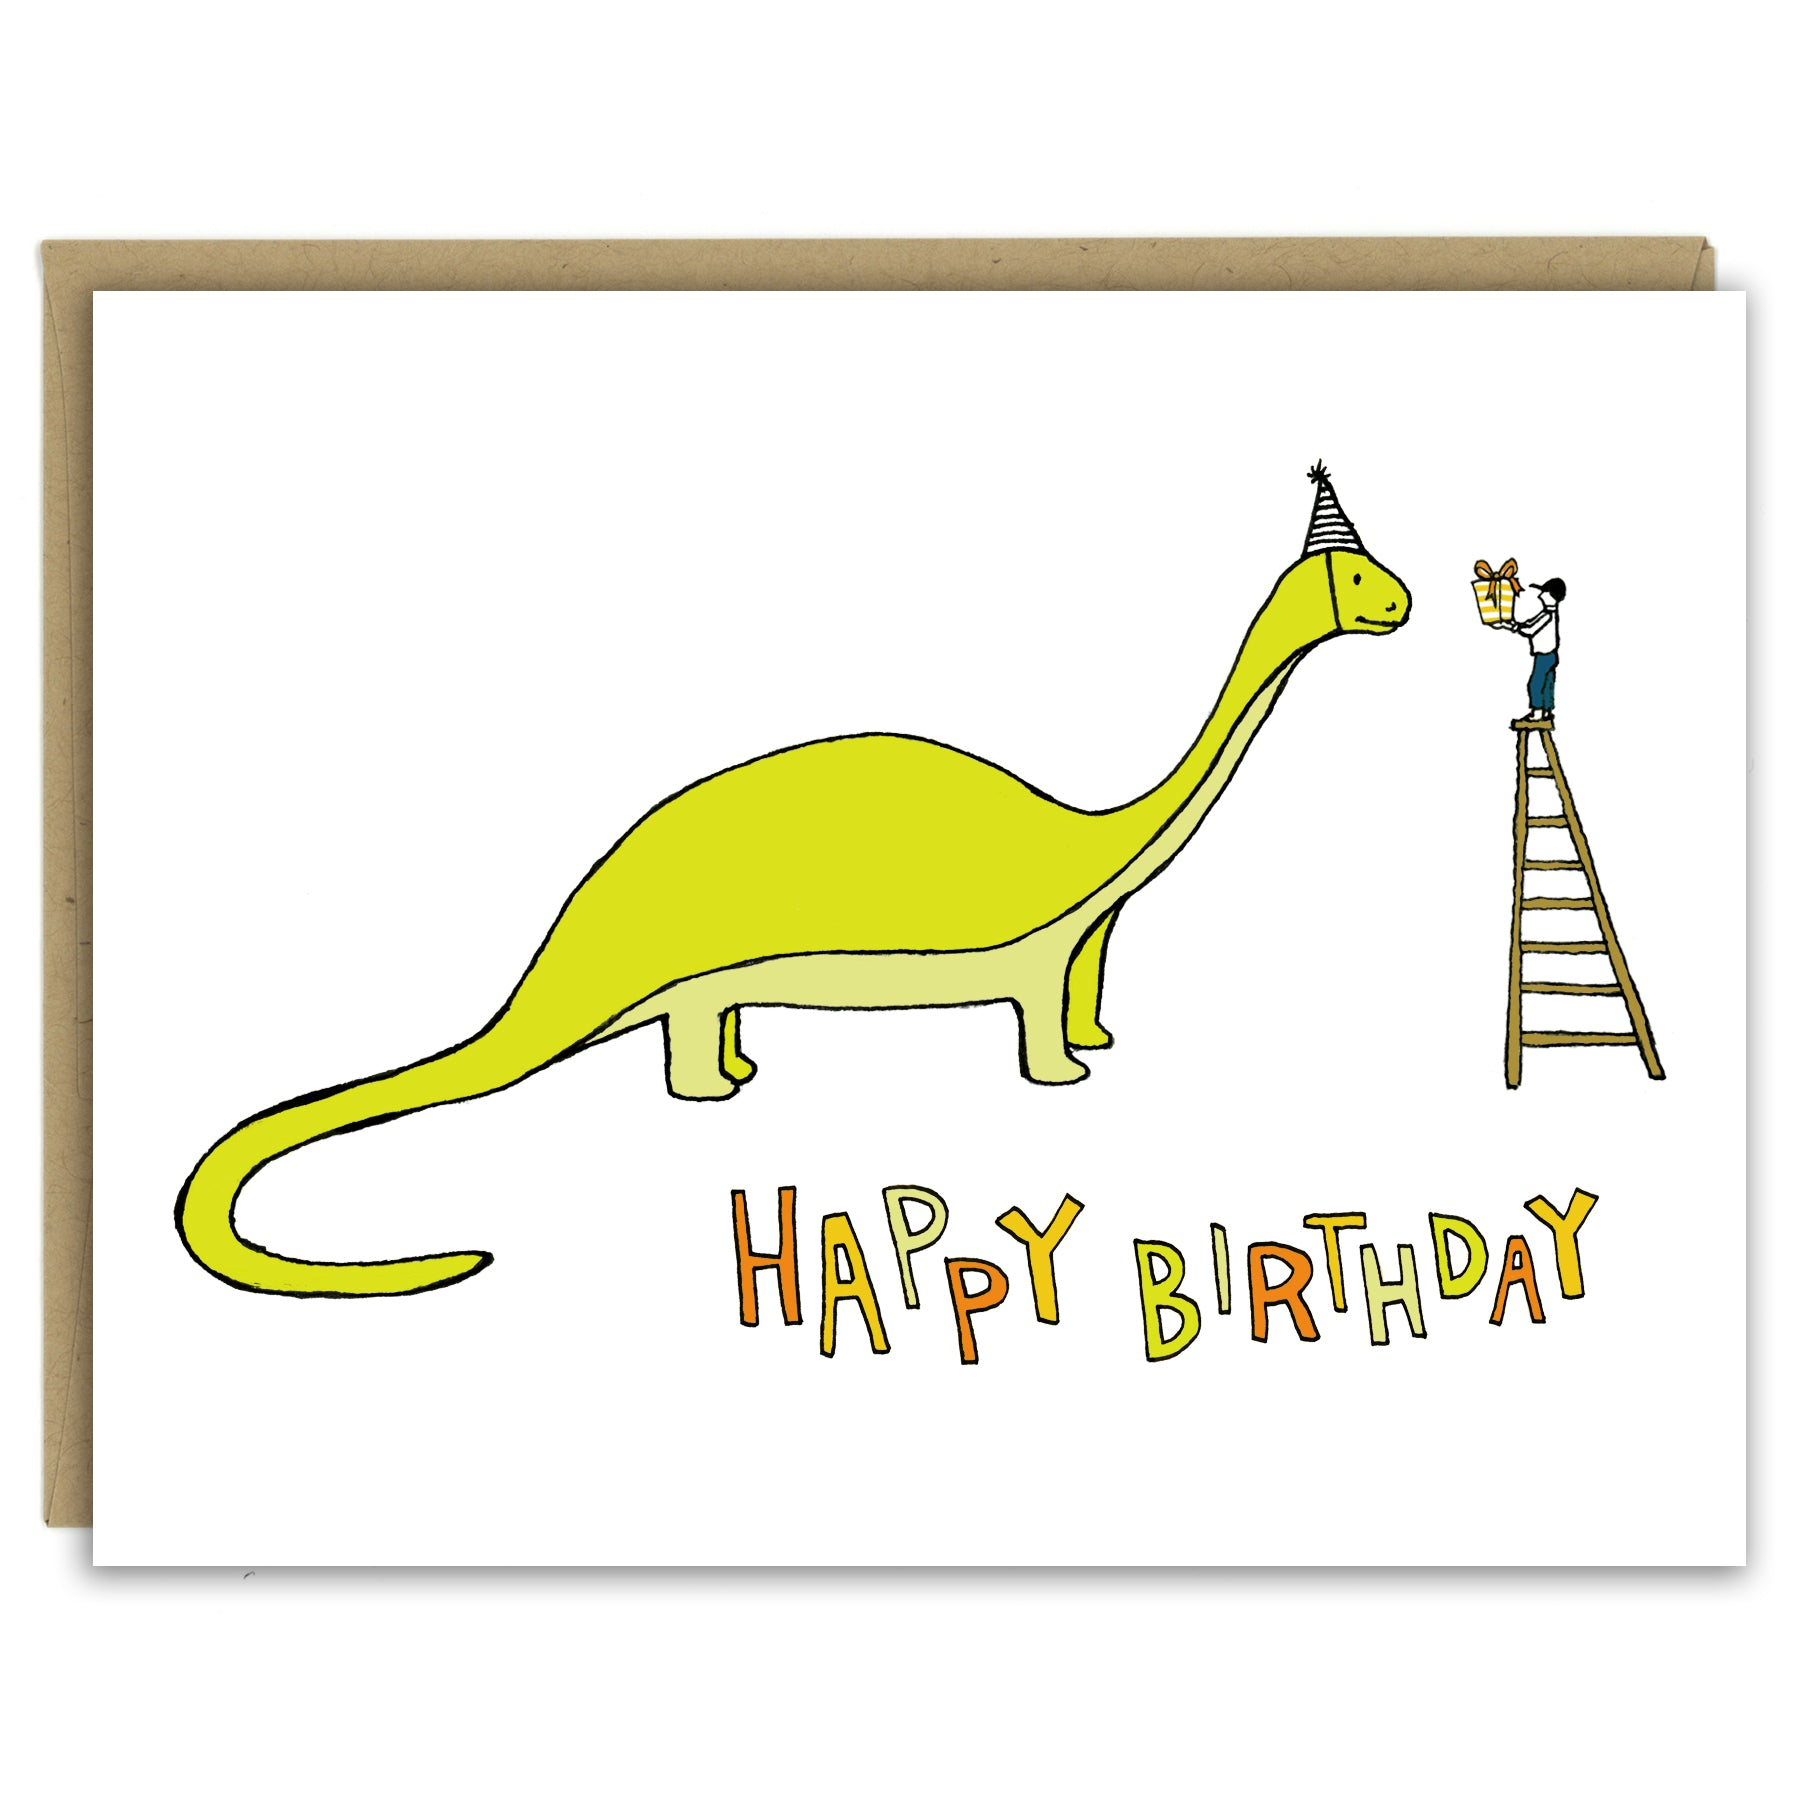 "A greeting card showing a hand-drawn illustration of a green brontosaurus wearing a party hat. A small boy stands on top of a ladder handing the dinosaur a wrapped birthday gift. A hand-lettered message reads, ""Happy Birthday."" Shown with a Kraft paper envelope on a white background."